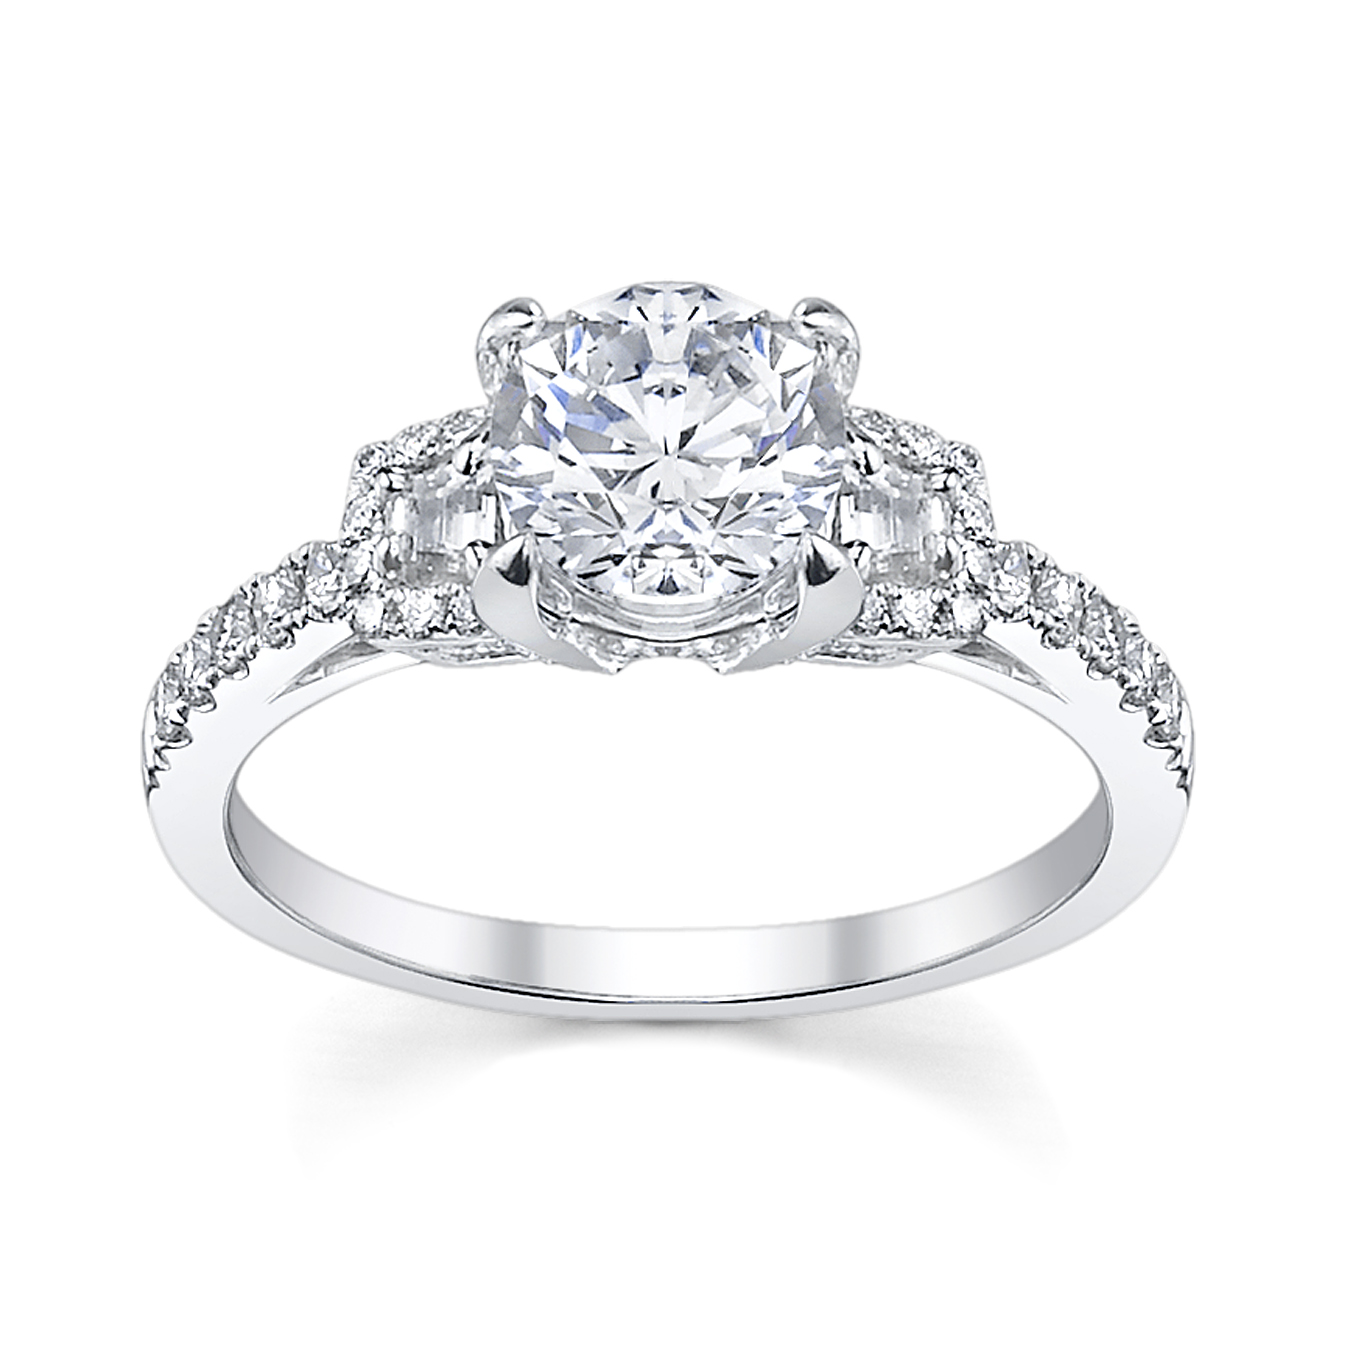 image wedding people jewelry in for rings trends engagement are shopping ring classy how